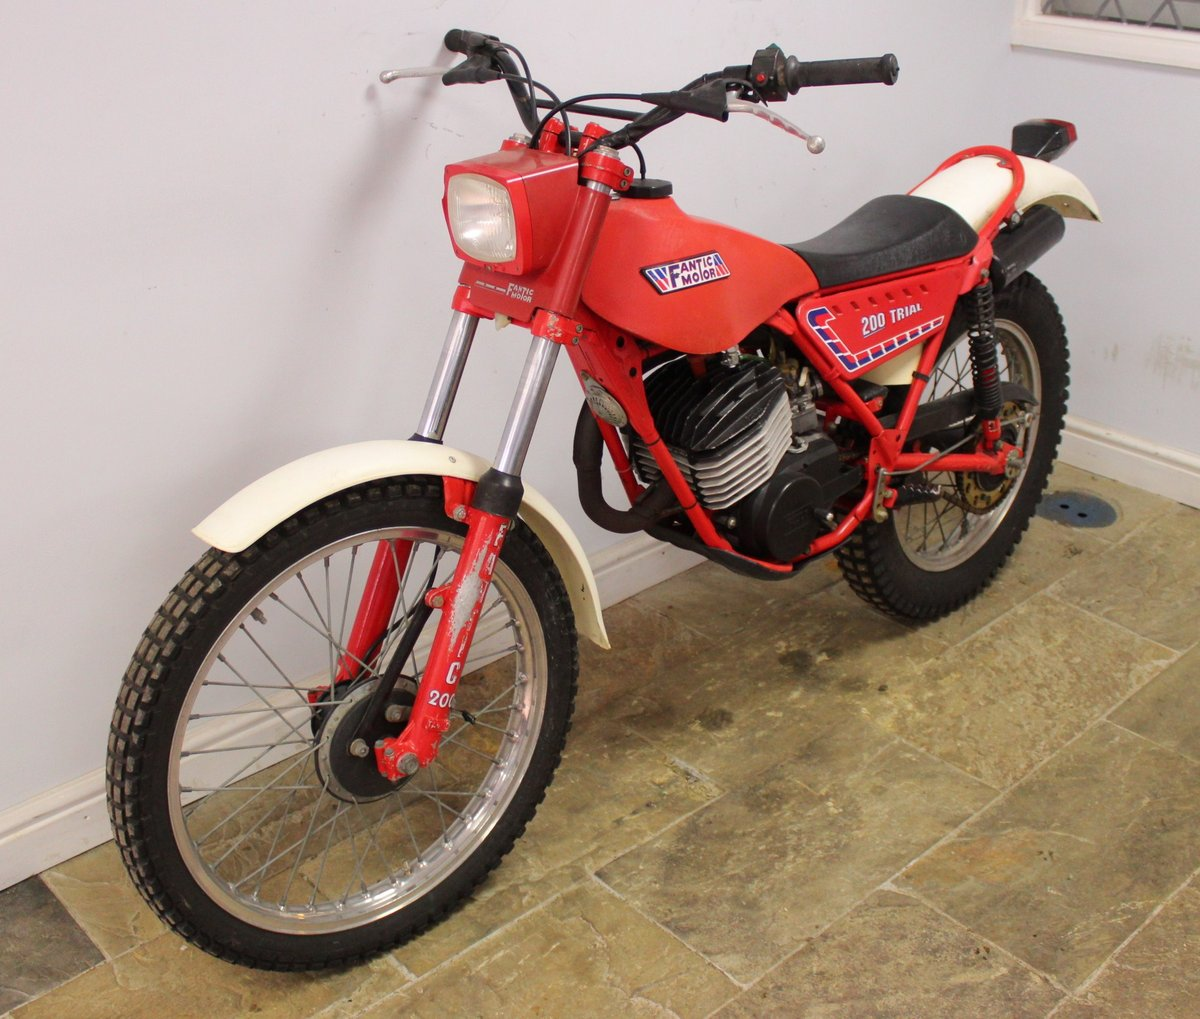 c1982 Fantic 200 cc Trials Bike Presented in excellent con SOLD (picture 6 of 6)